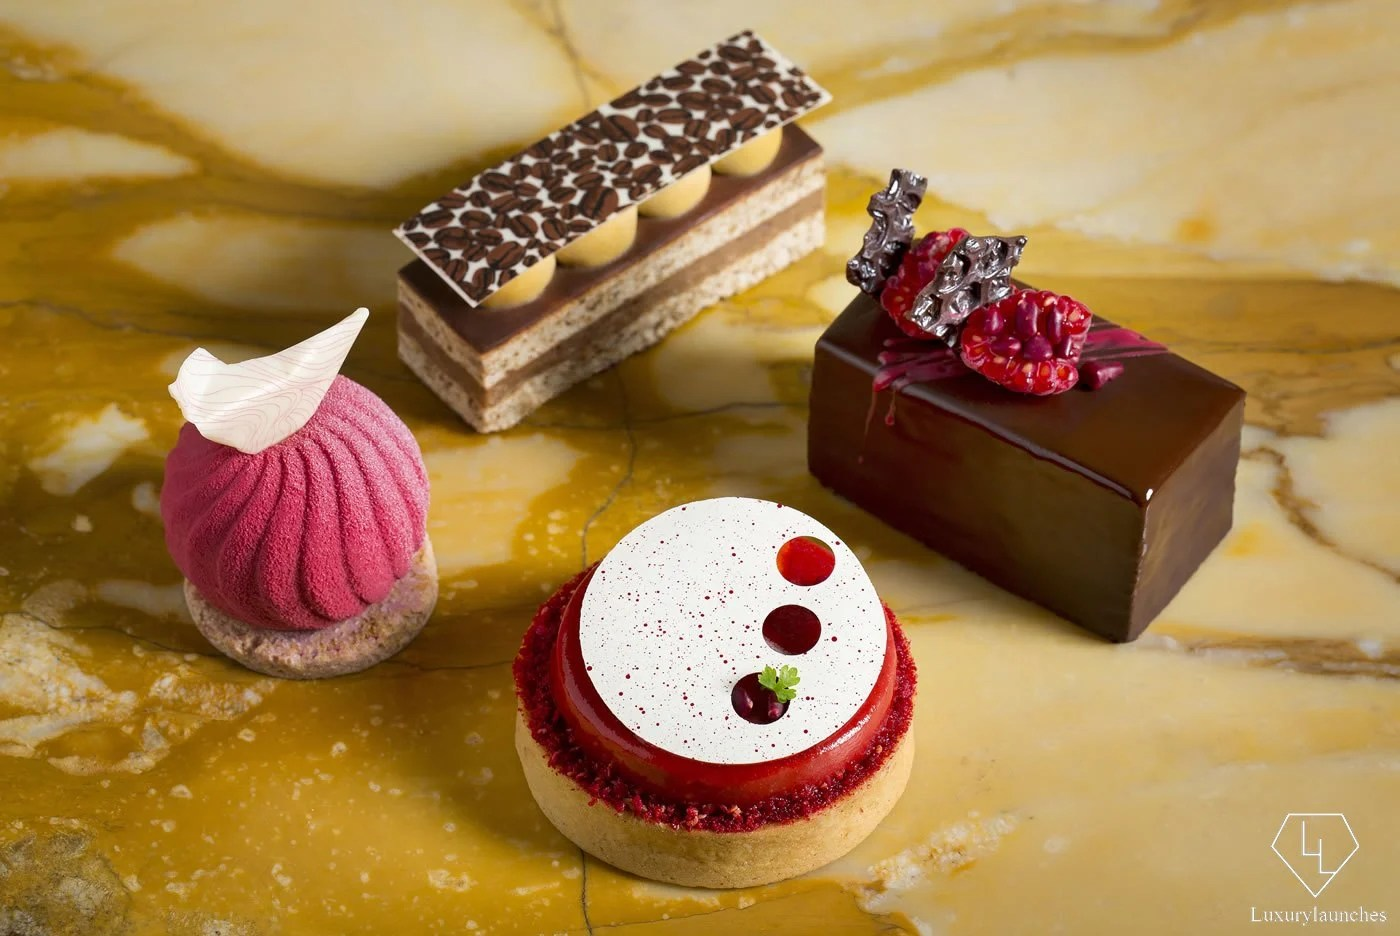 New dessert tasting menu launched at Hotel Caf Royals